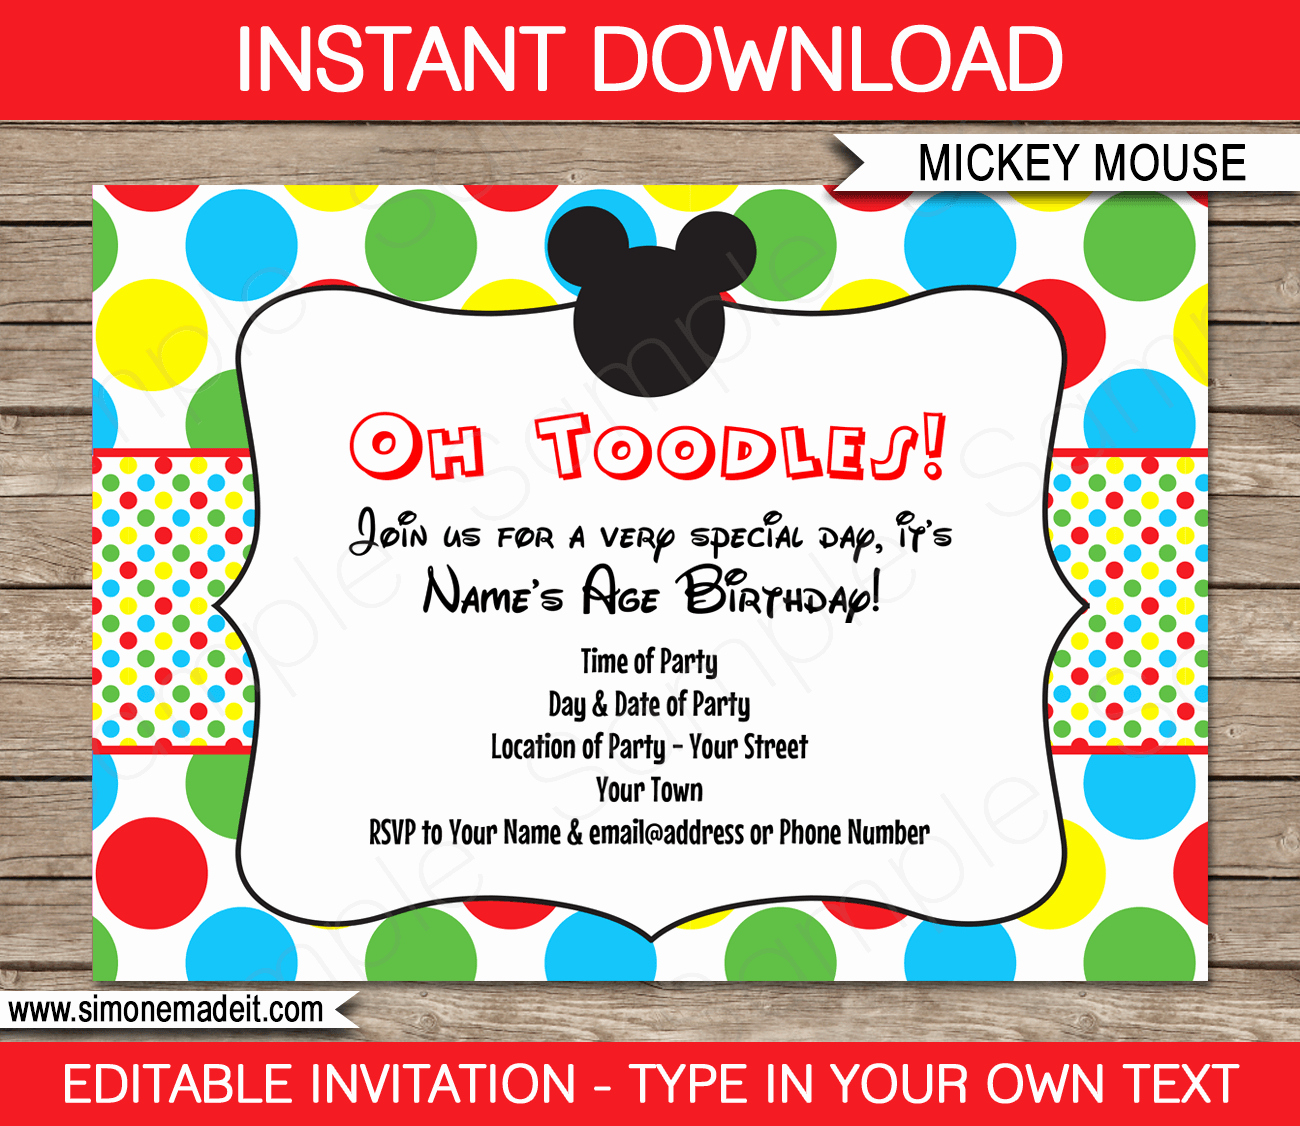 Party Invitation Templates Free Download Unique Mickey Mouse Party Invitations Template